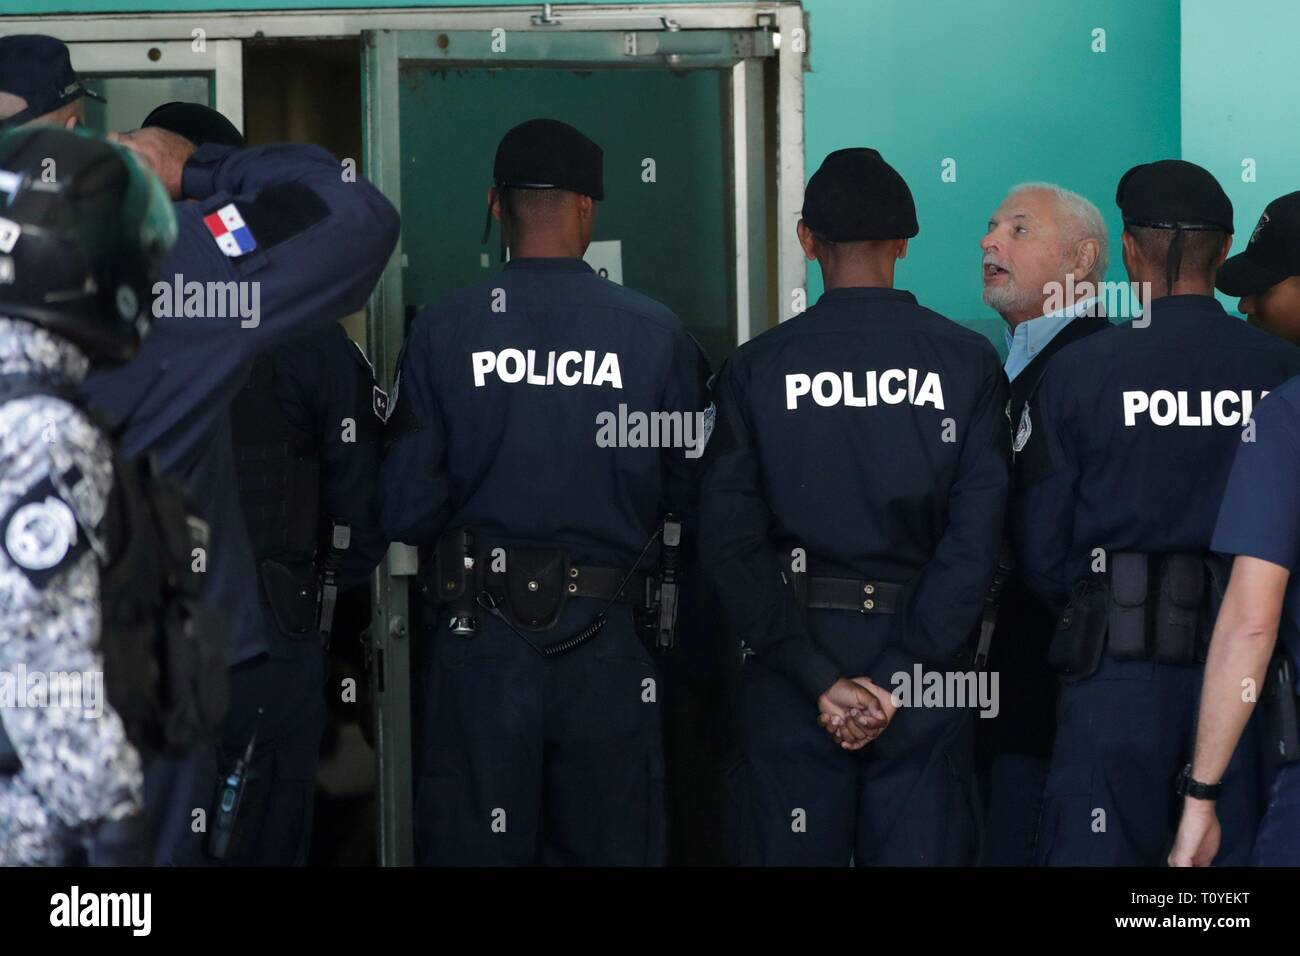 Panama City, Panama. 22nd Mar 2019. Police units guard former President of Panama, Ricardo Martinelli (3R), upon his arrival at the court of the Accusatory Criminal System for alleged eavesdropping and embezzlement in his mandate 2009 - 2014, in Panama City, Panama, 22 March 2019. Martinelli's trial is resumed after forensics determined that the depression he presented does not disable him to be in the audience. EFE/ Welcome Velasco Credit: EFE News Agency/Alamy Live News - Stock Image